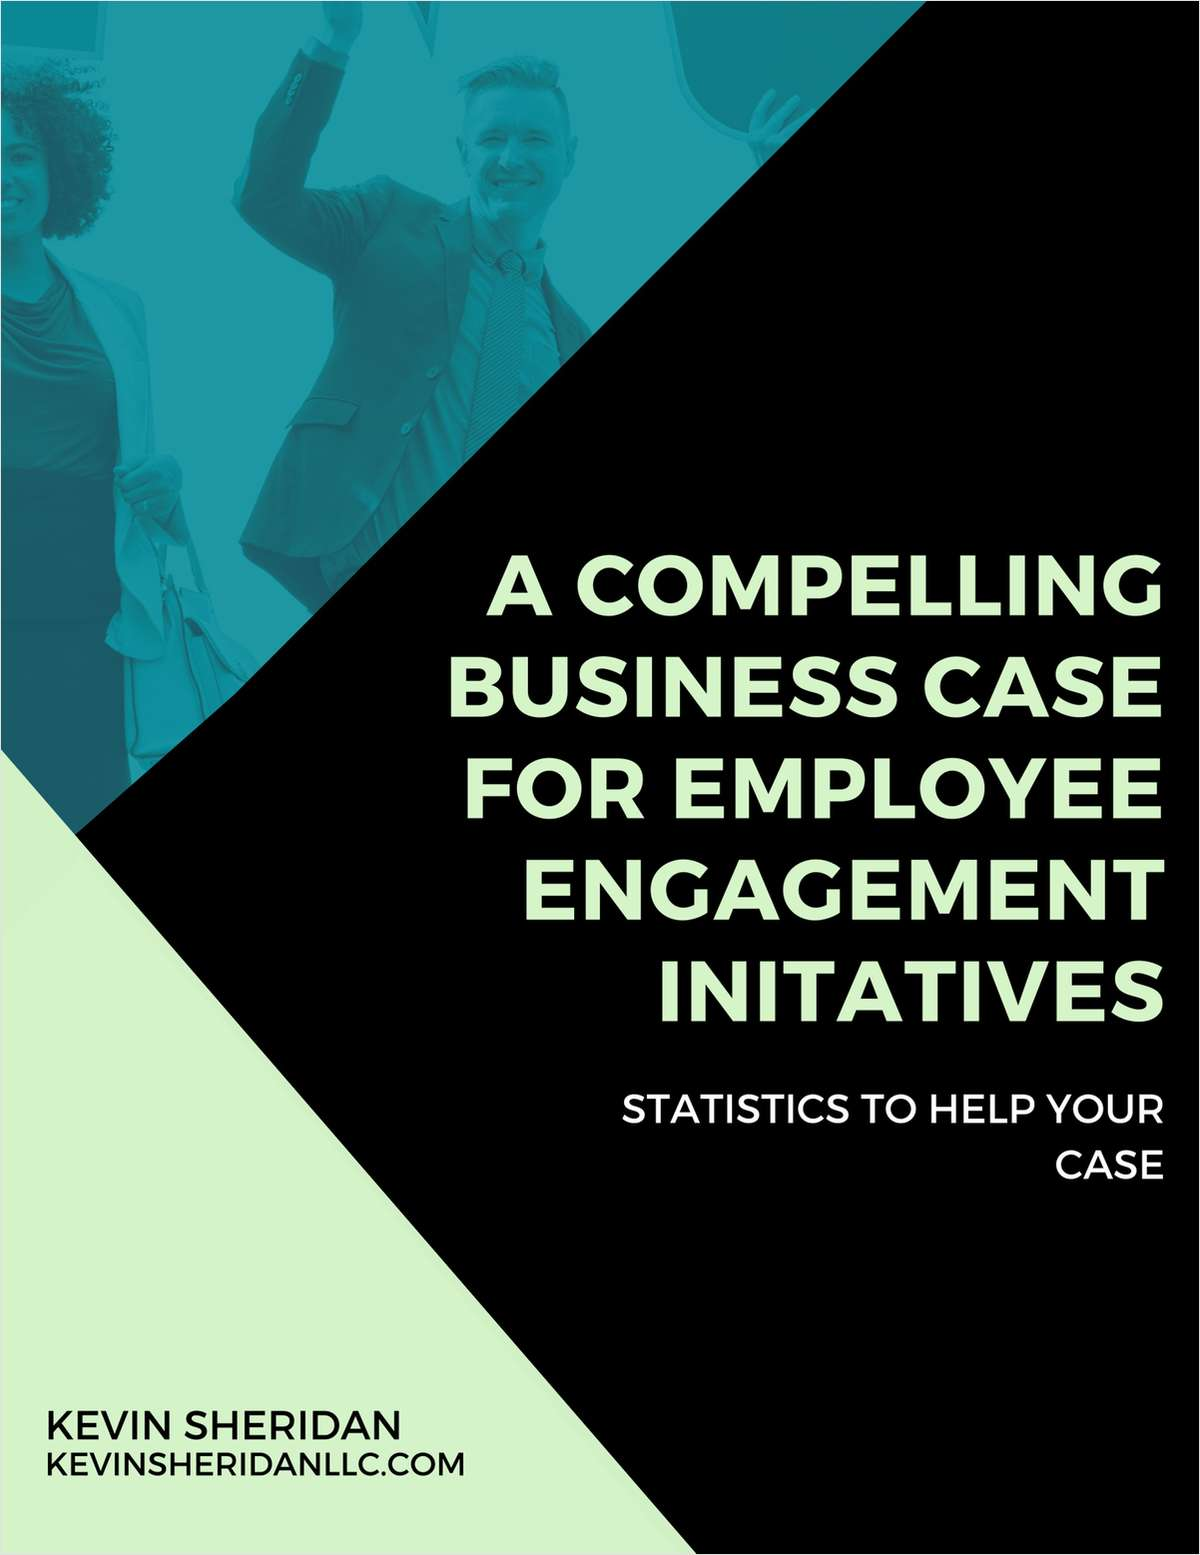 A Compelling Business Case for Employee Engagement Initiatives